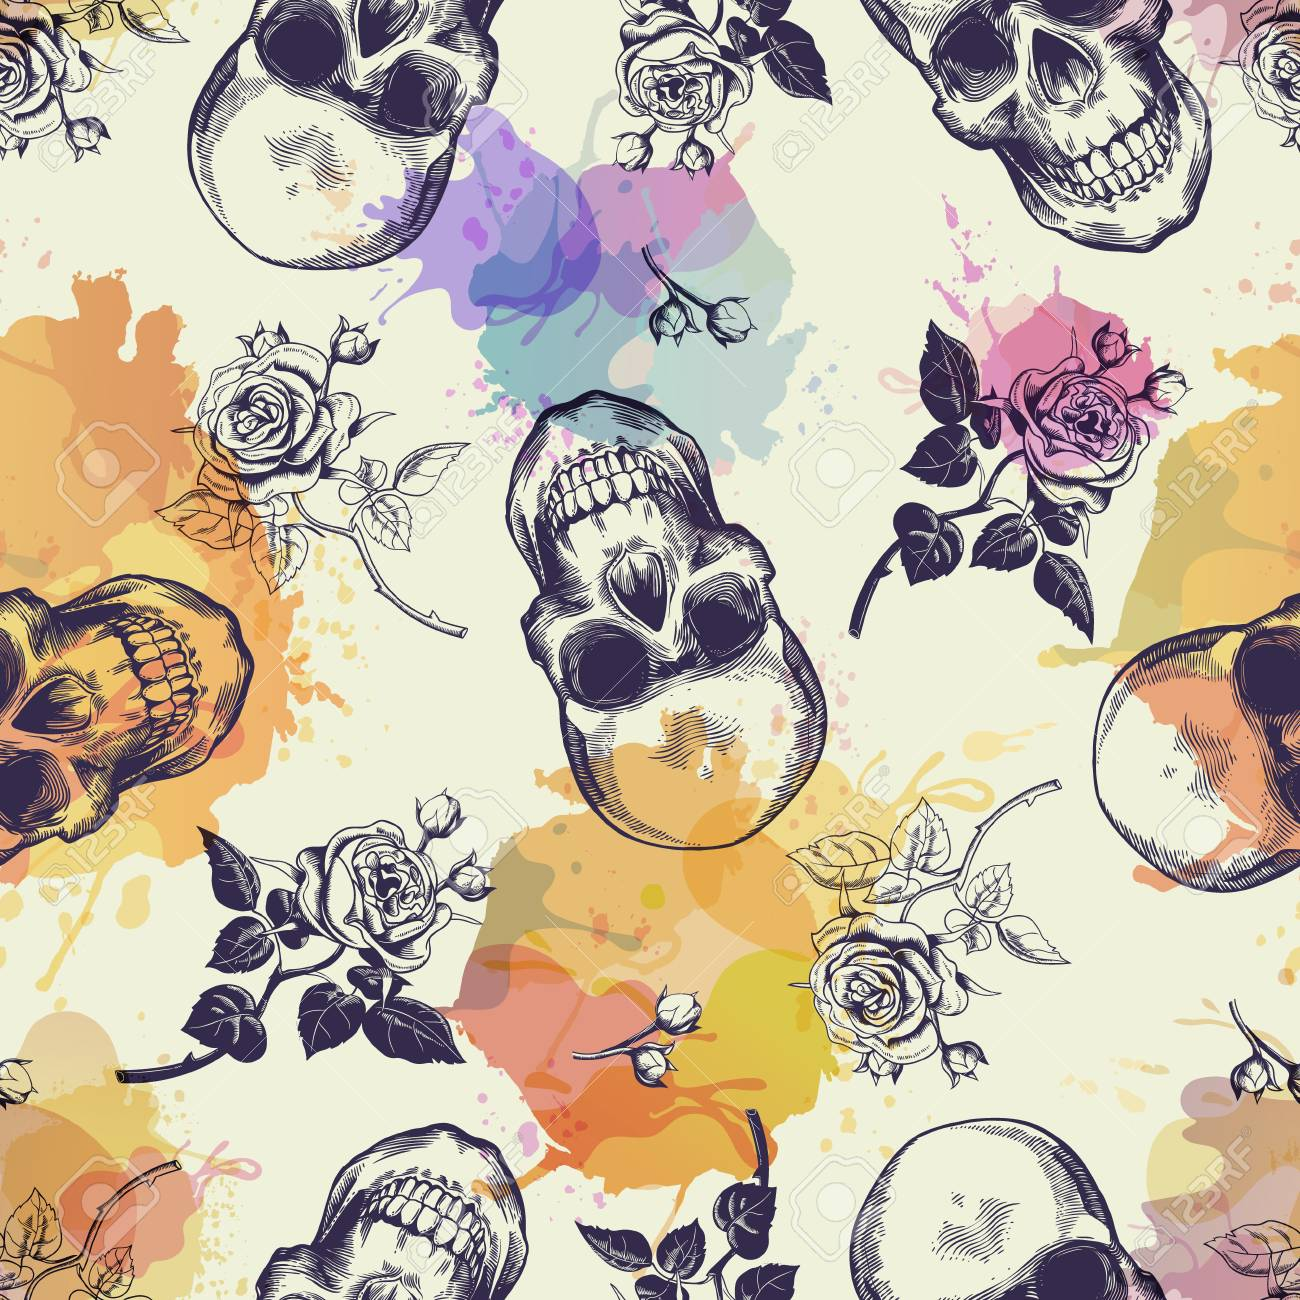 Seamless pattern with skulls and rose flowers drawn in engraving style and translucent colorful blots. Modern and trendy backdrop. Vector illustration for wallpaper, fabric print, poster, flyer. - 72320997